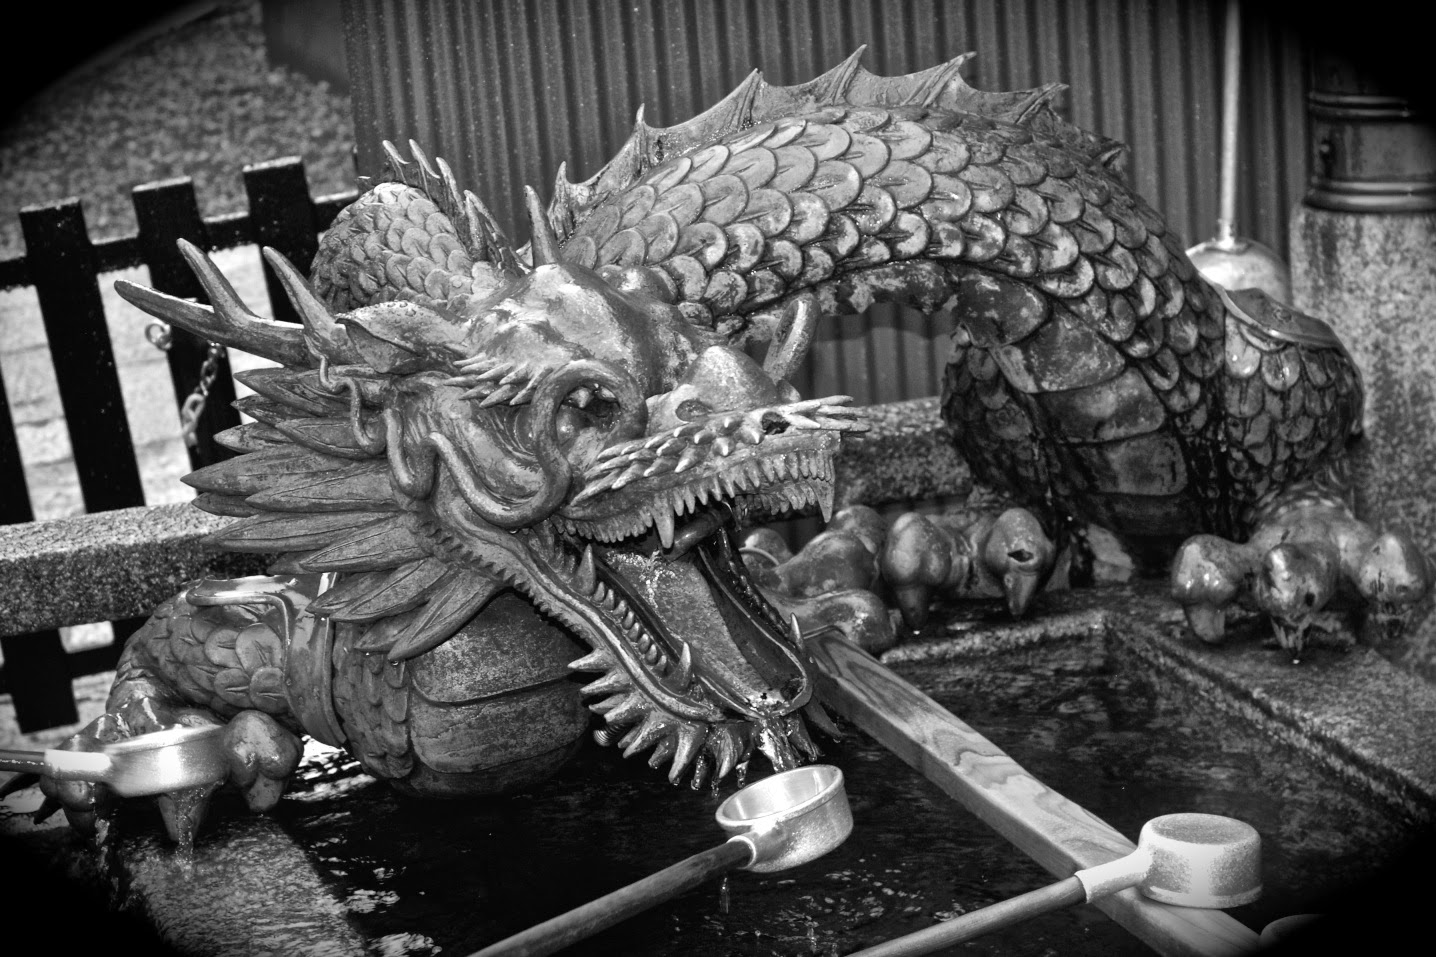 Hic Sunt Dracones: Here be Dragons | Lost in Translation ...